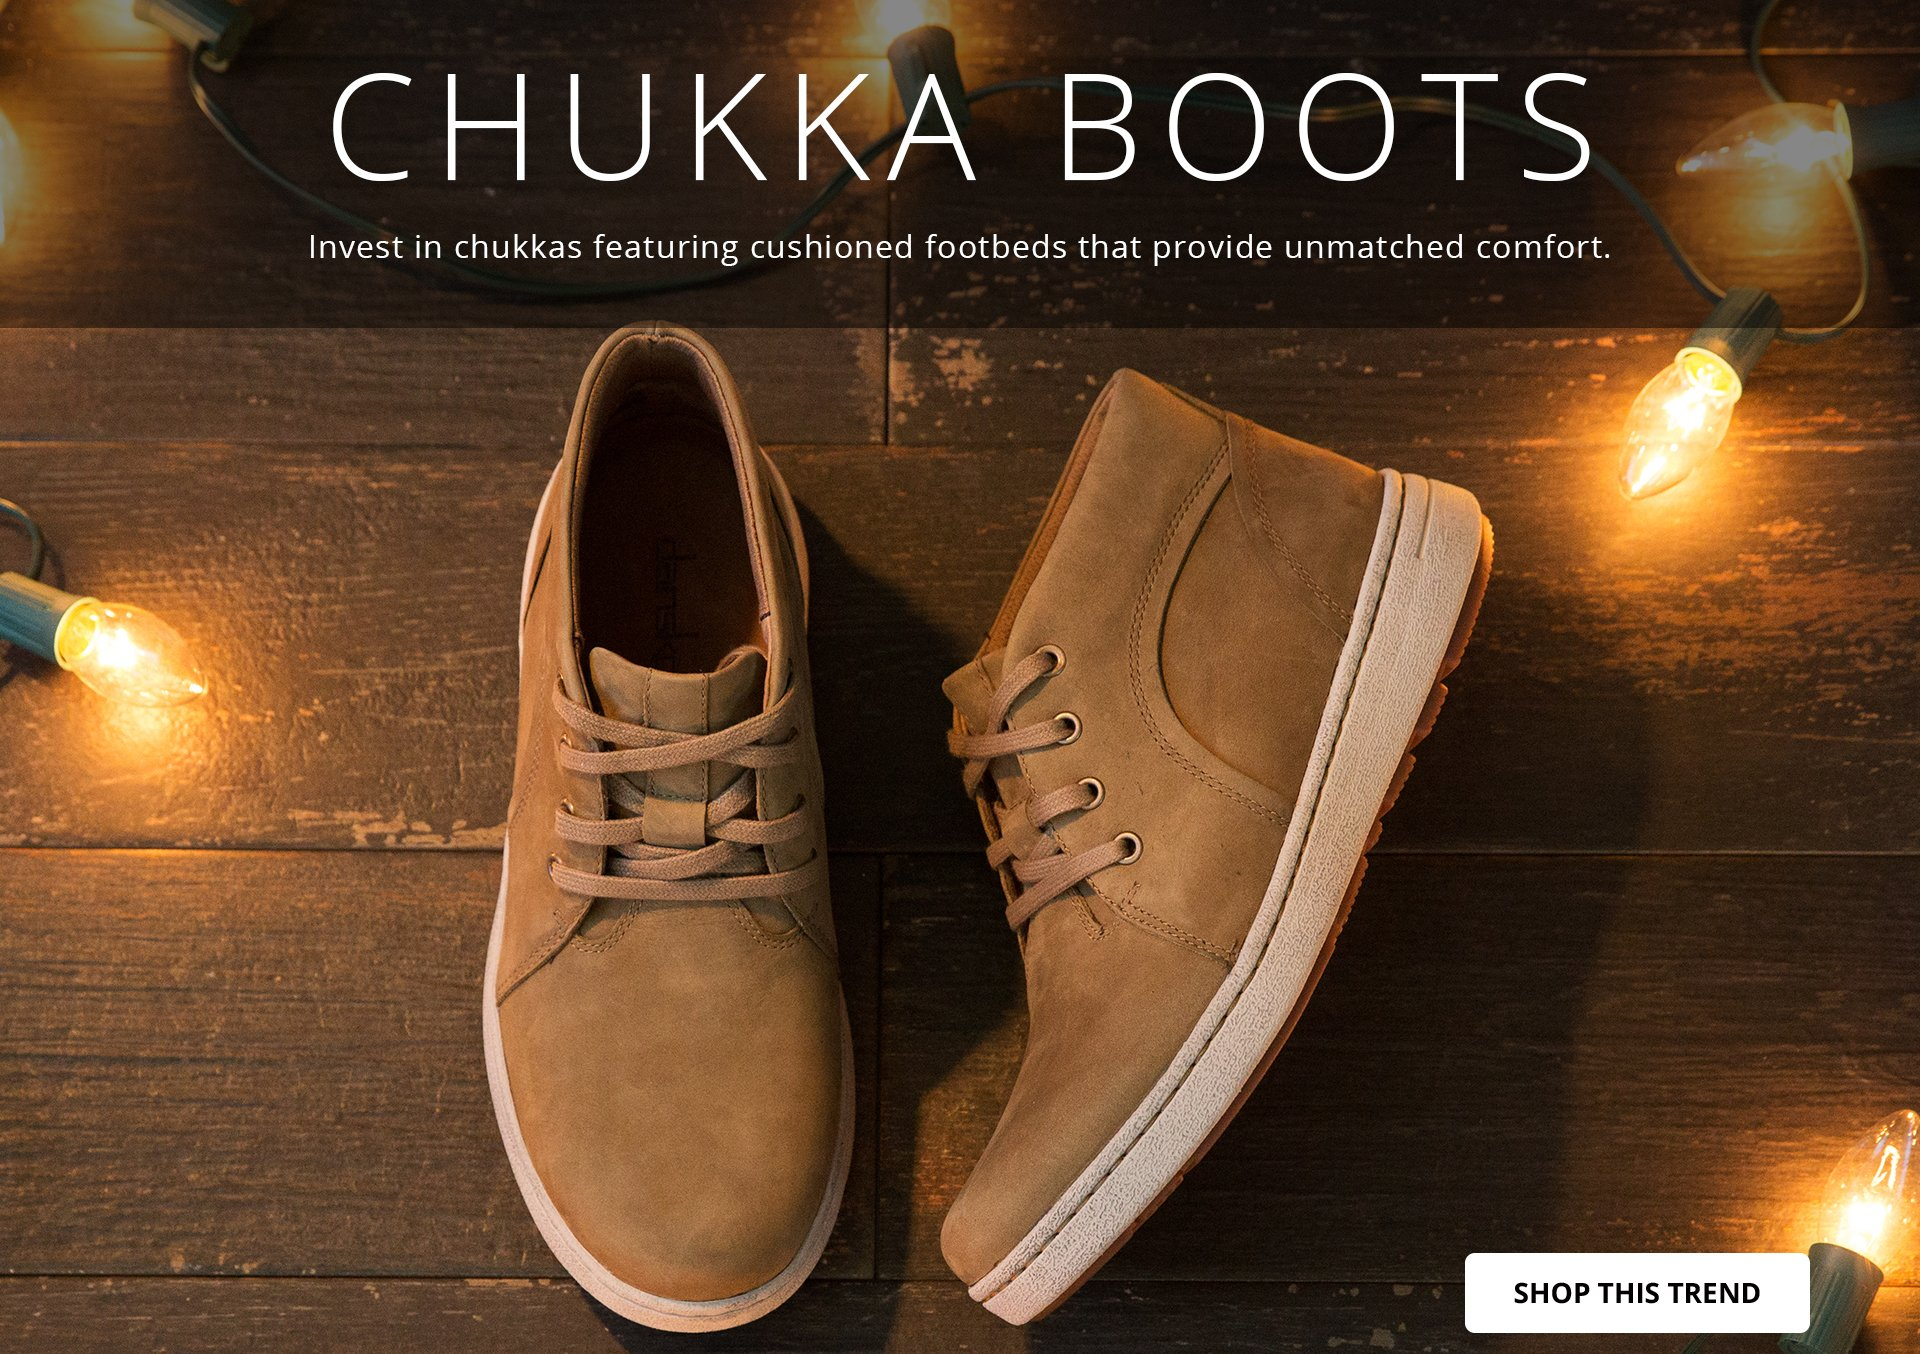 CHUKKA BOOTS: Invest in chukkas featuring cushioned footbeds that provide unmatched comfort. SHOP THIS TREND